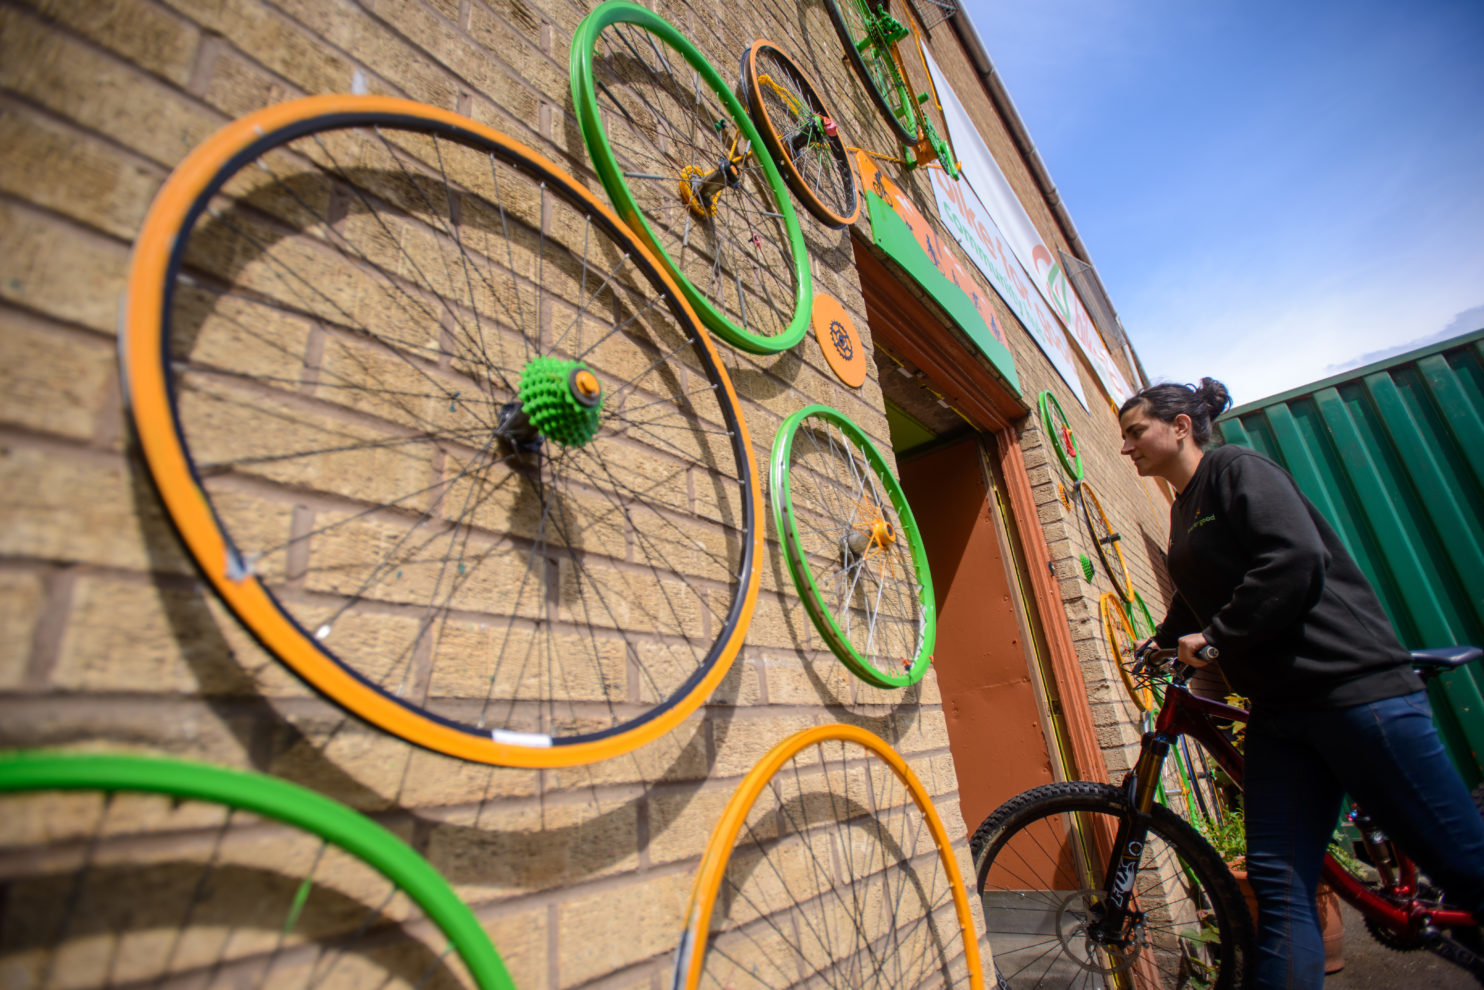 Exterior of the Bike for Good Hub, Govanhill